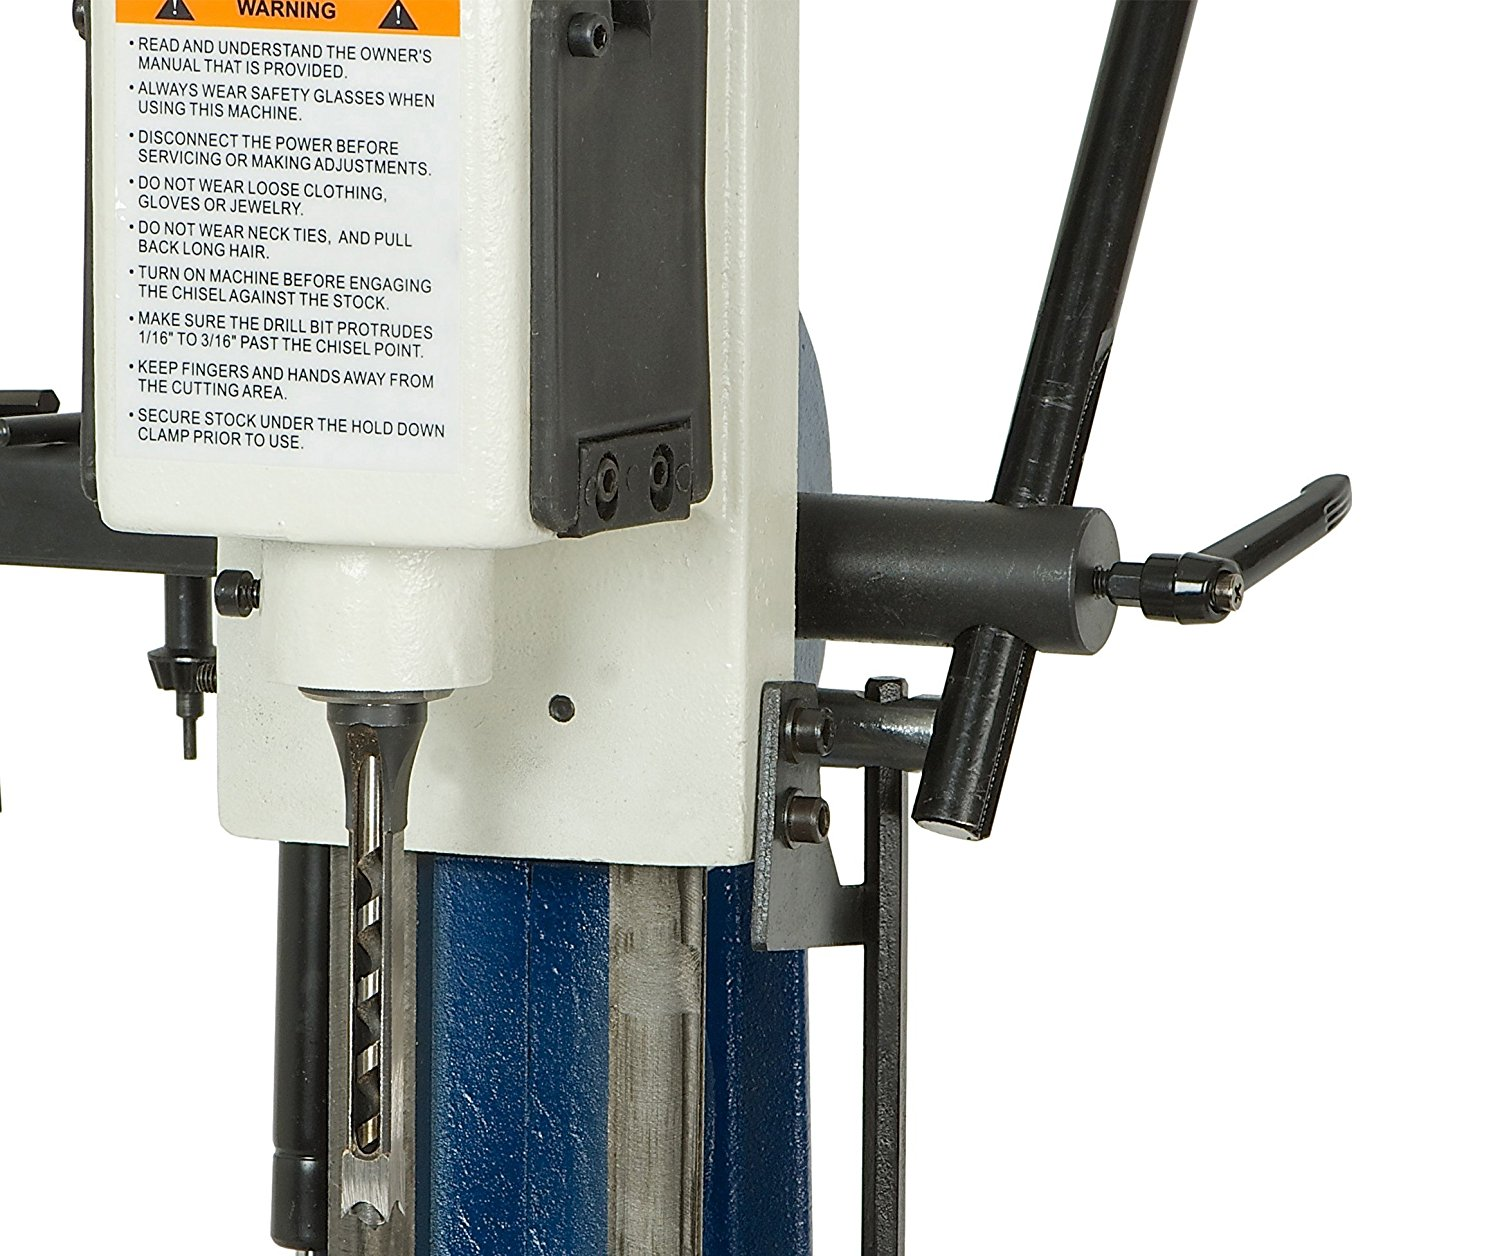 RIKON Power drill press